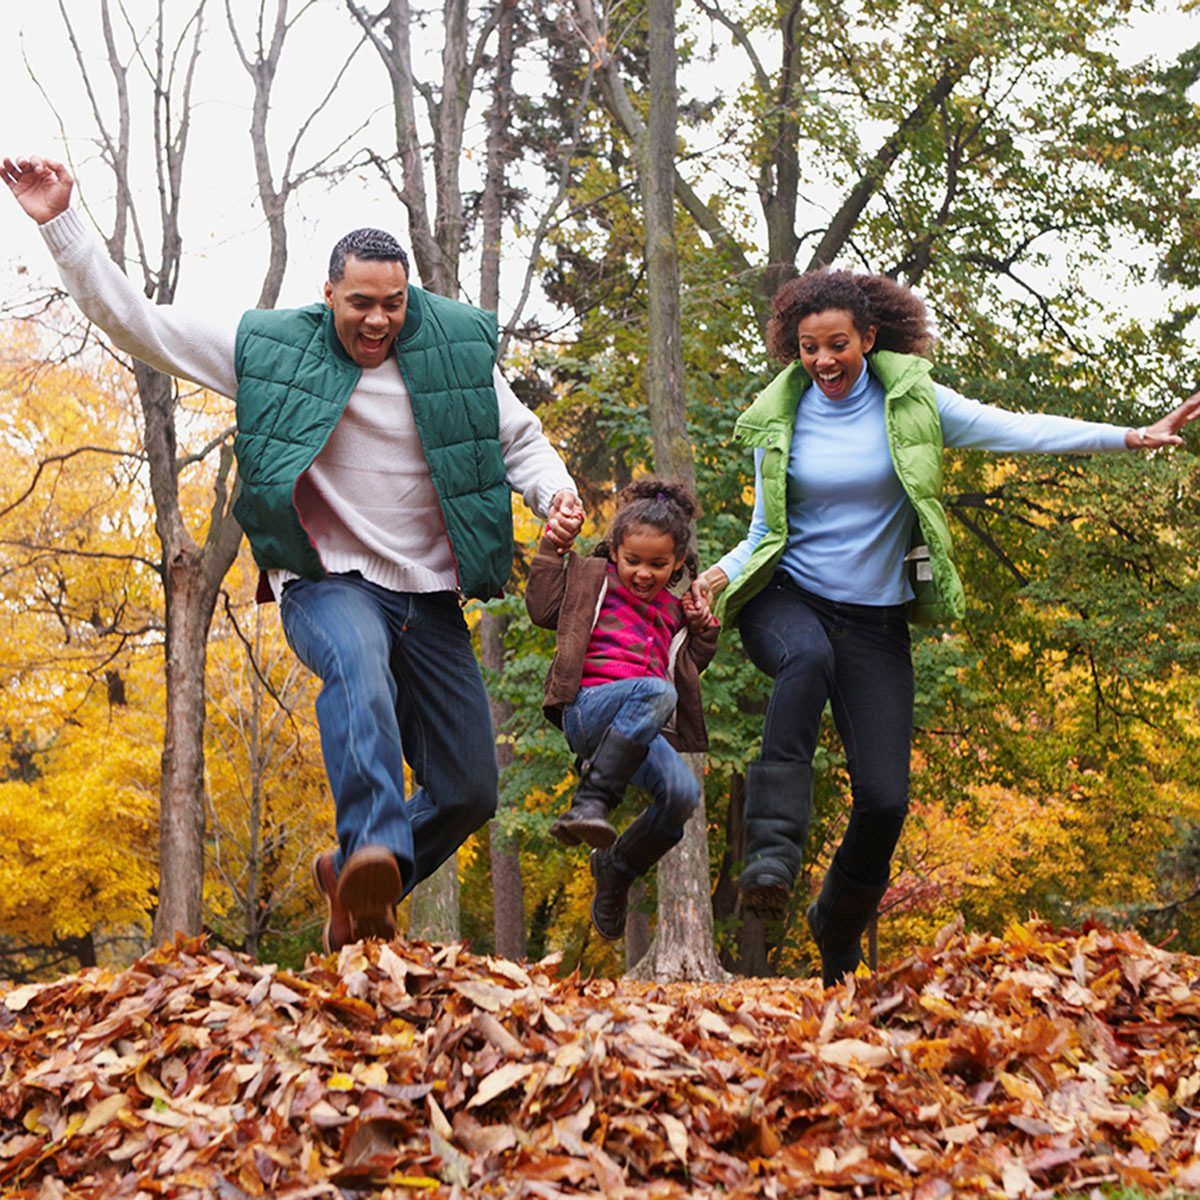 Family Jumping Into Pile Of Autumn Leaves